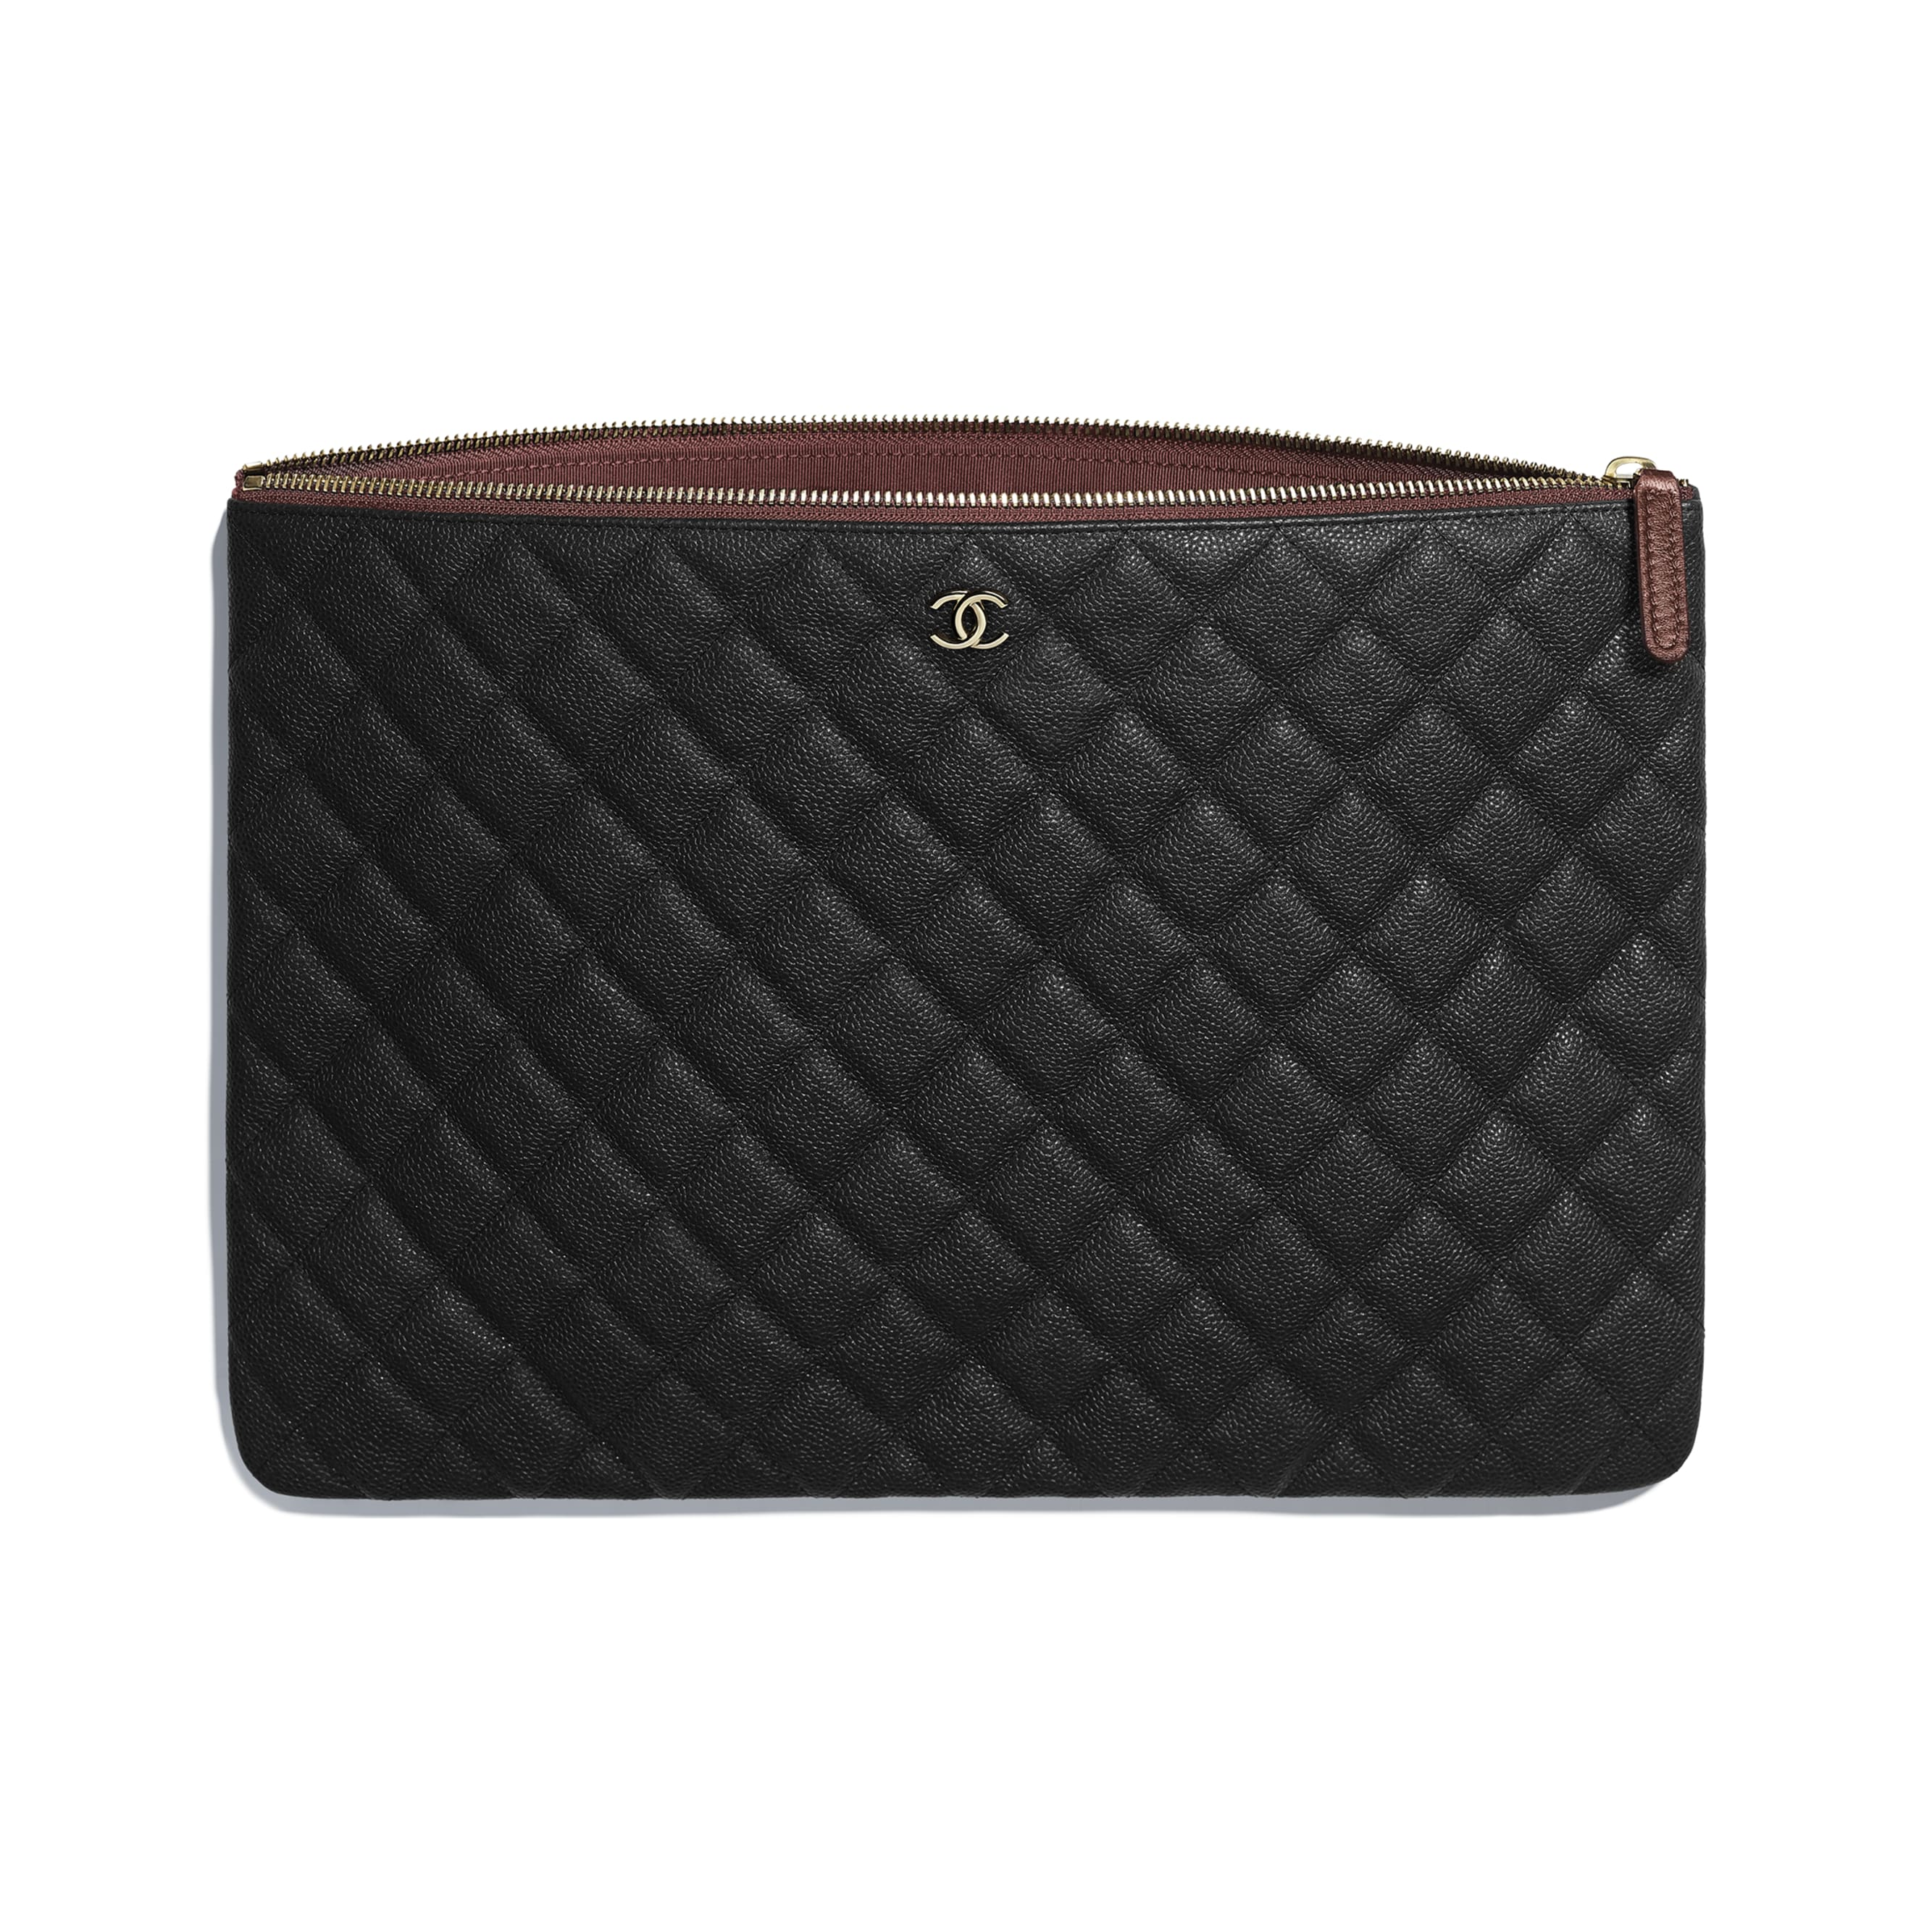 Classic Large Pouch - Black - Grained Calfskin & Gold-Tone Metal - CHANEL - Other view - see standard sized version